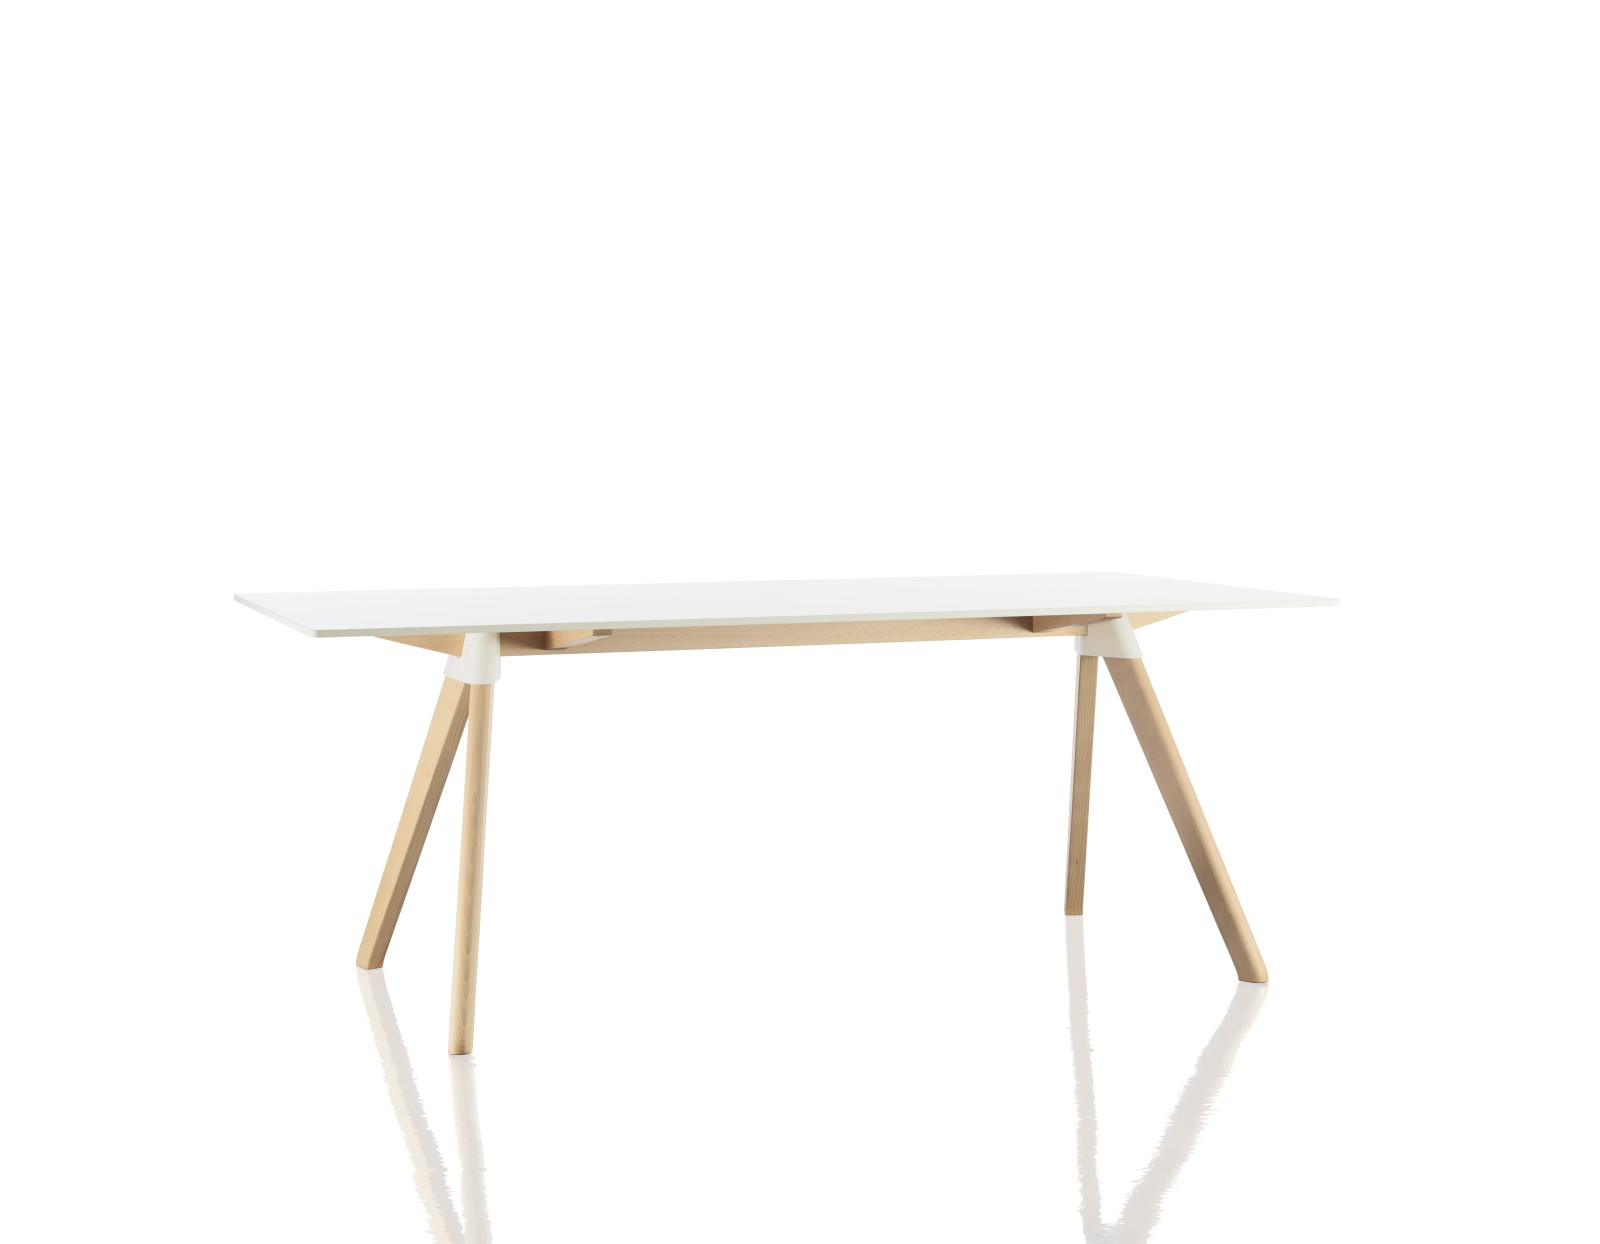 Butch - The Wild Bunch Dining Table White, Natural Beech, 180cm